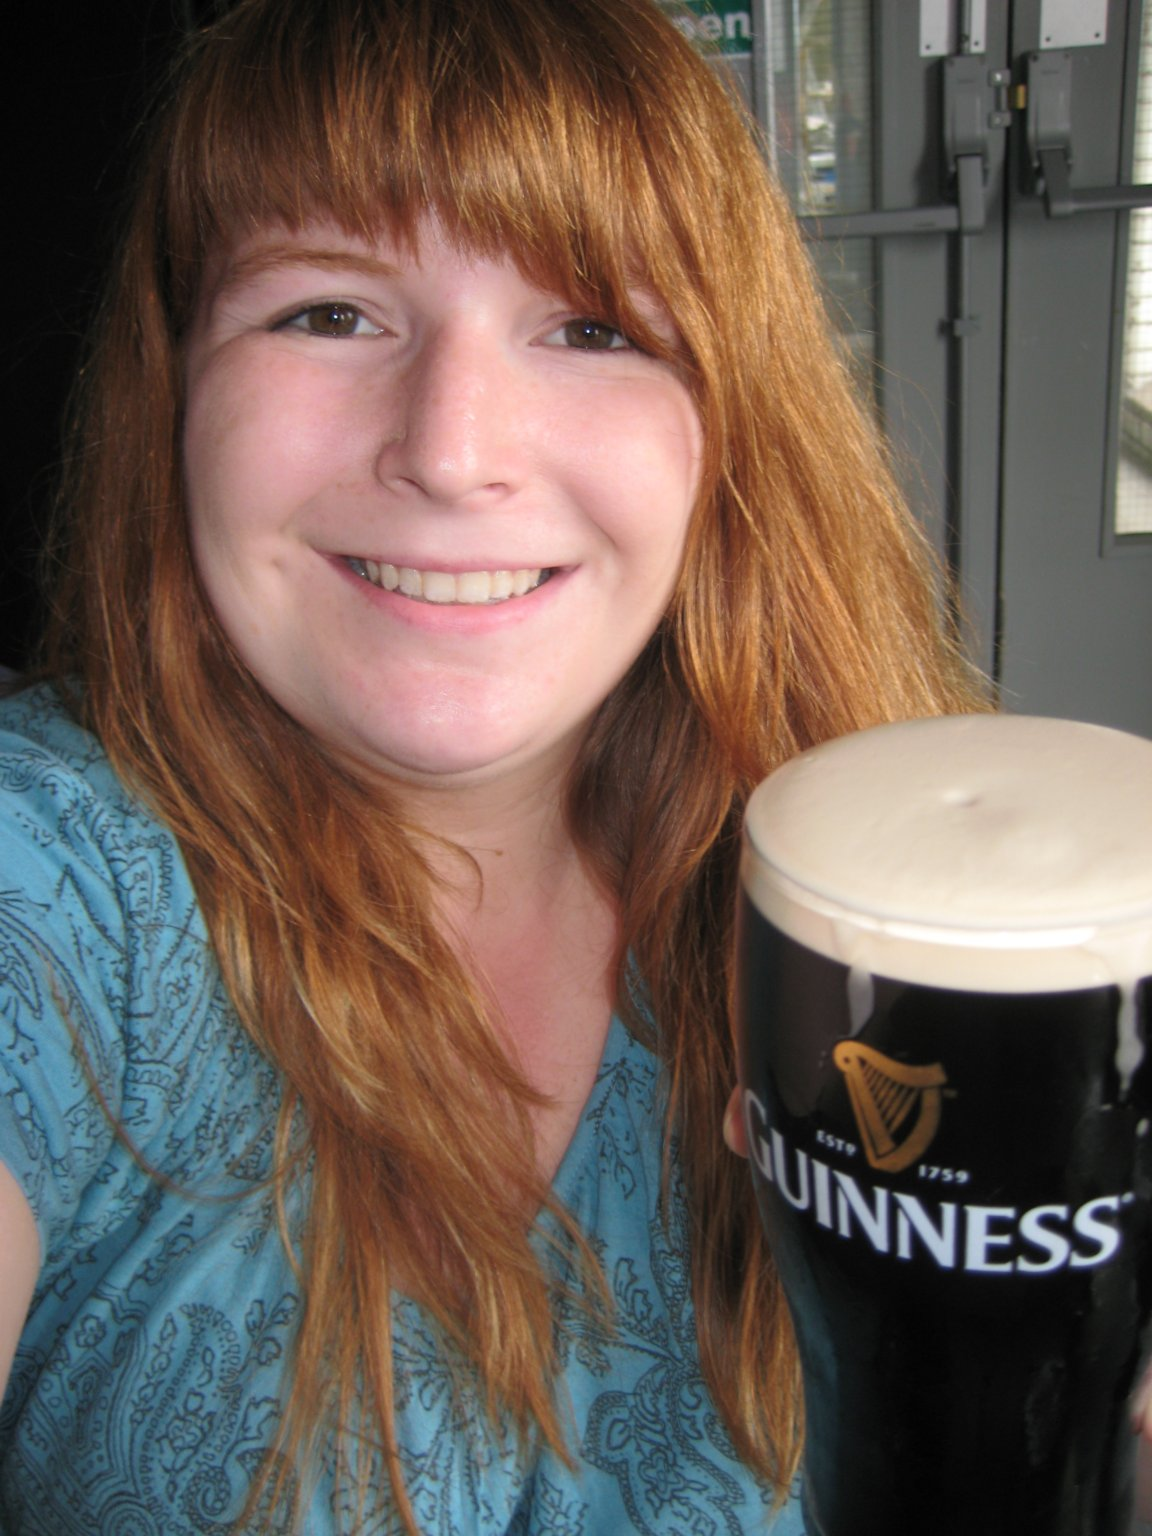 me learning how to draw the perfect pint of Guinness